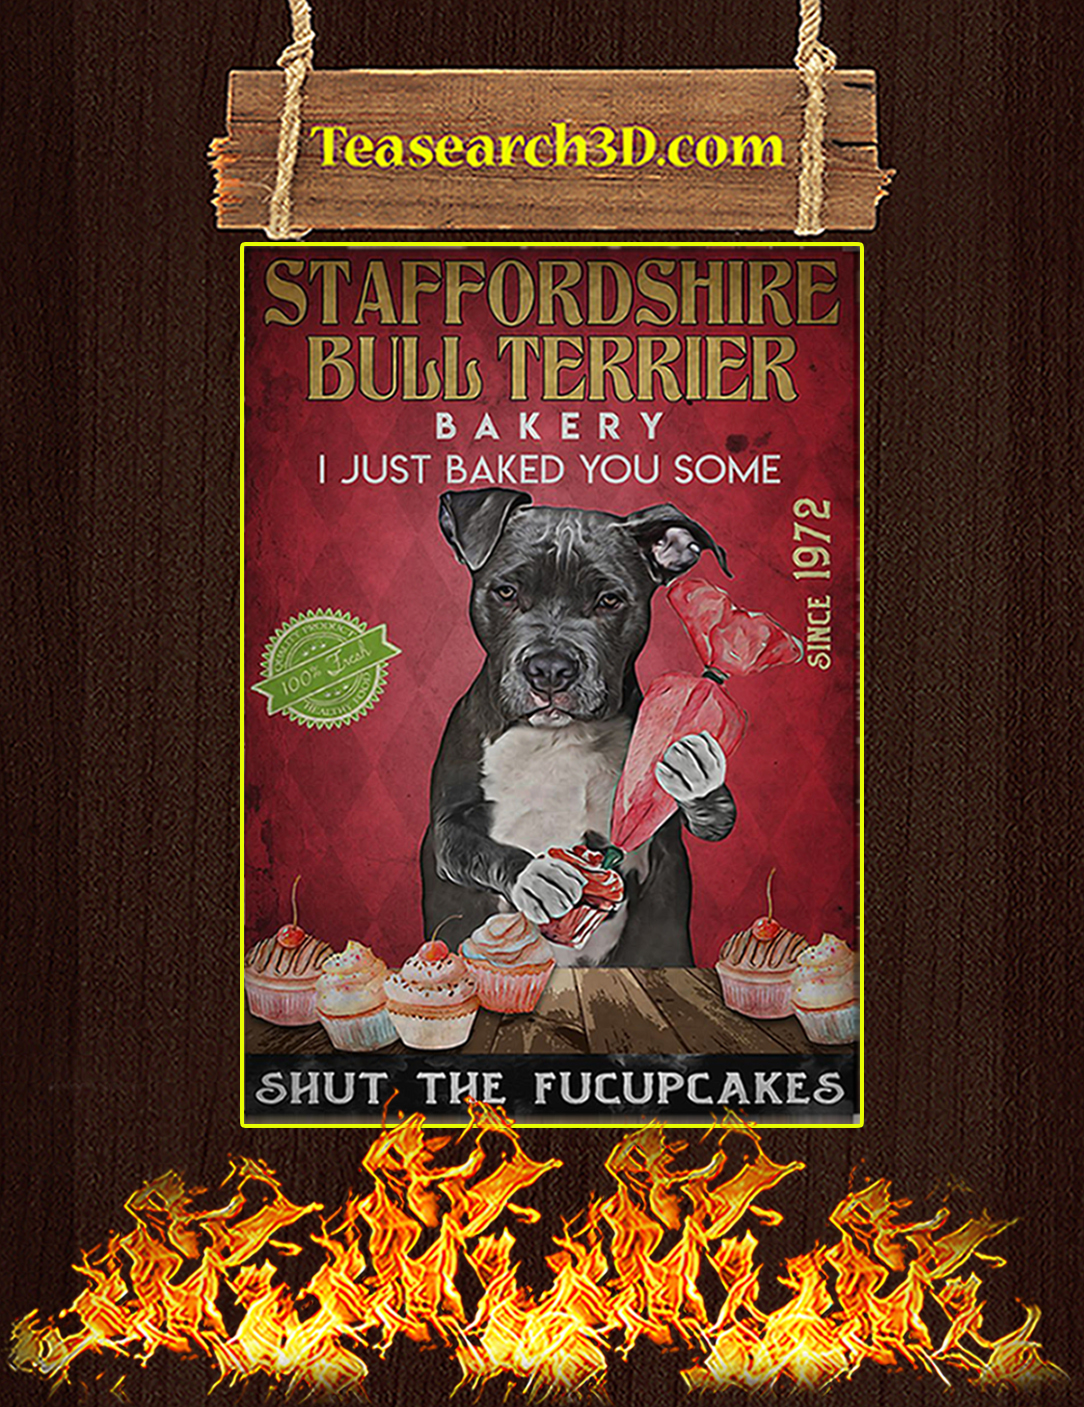 Staffordshire bull terrier fucupcakes bakery I just baked you some poster A2